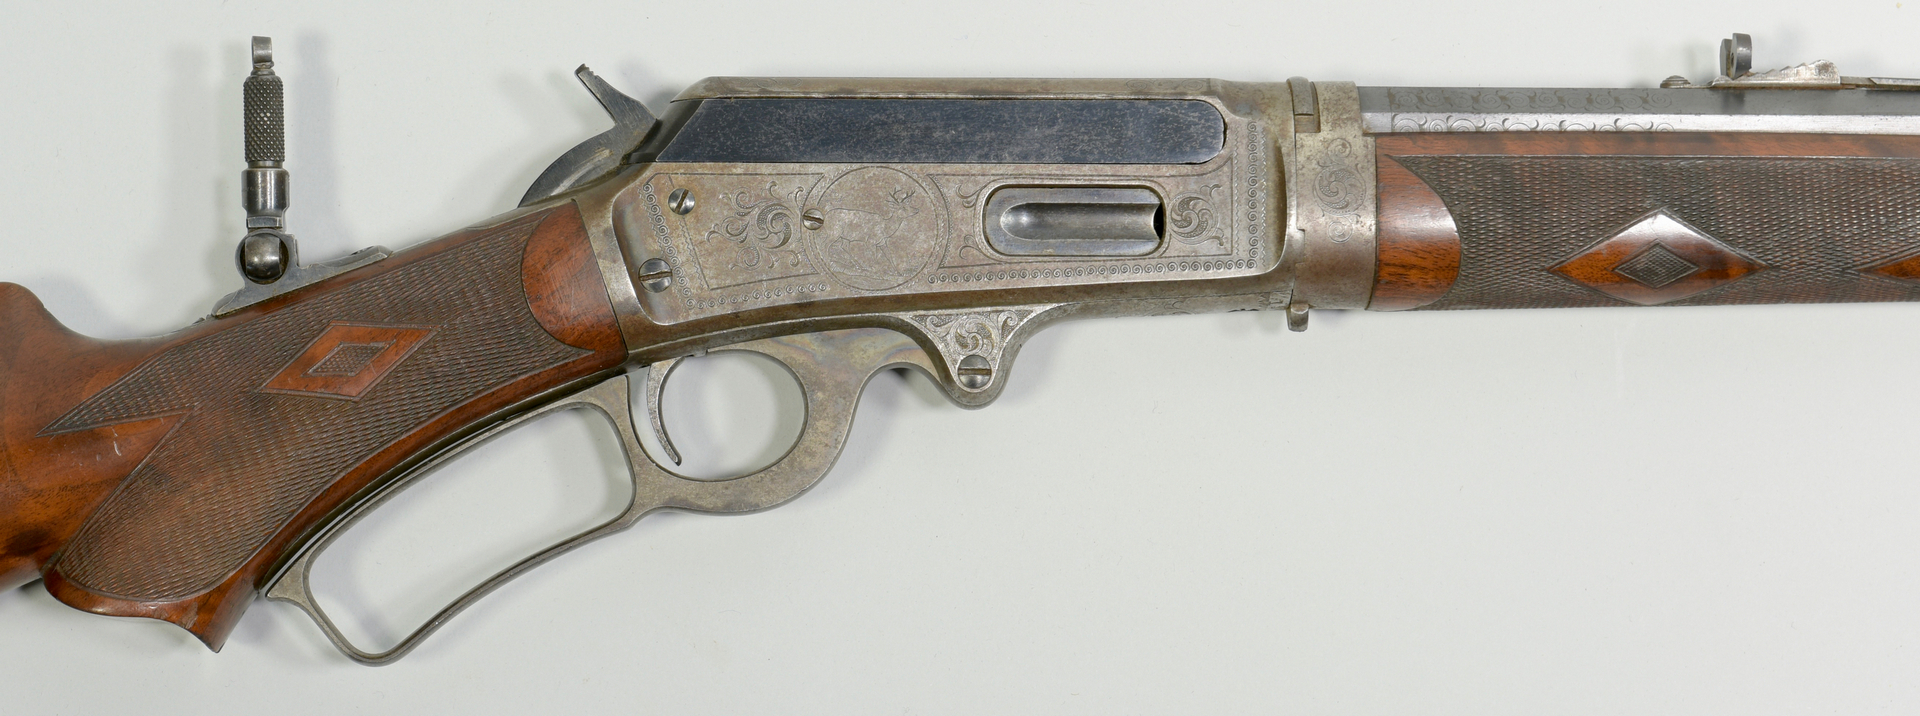 Lot 307 Marlin Special Order Deluxe Rifle Model 1893